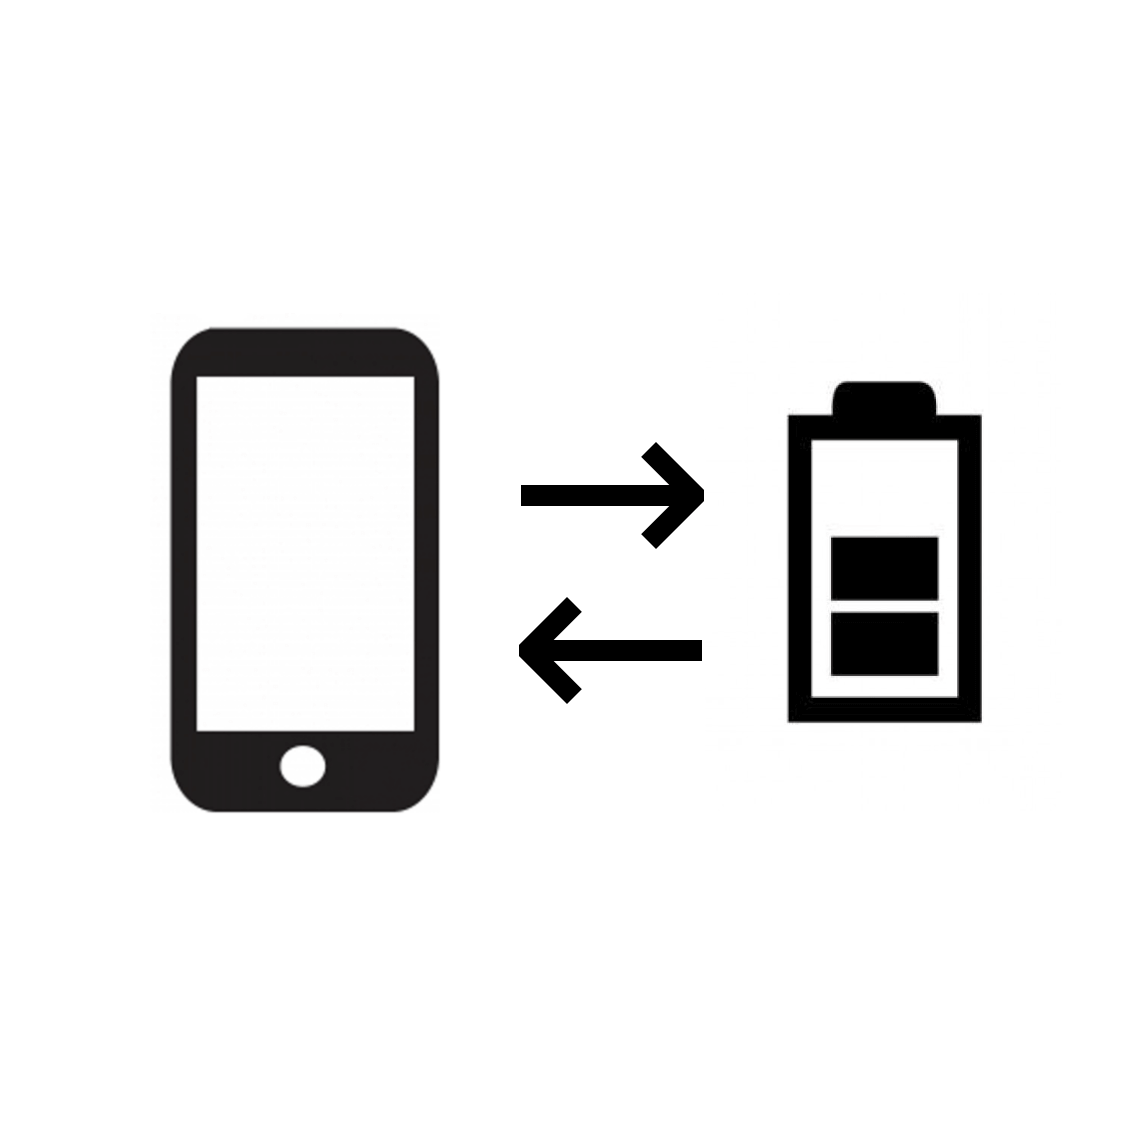 Smartphones with removable battery